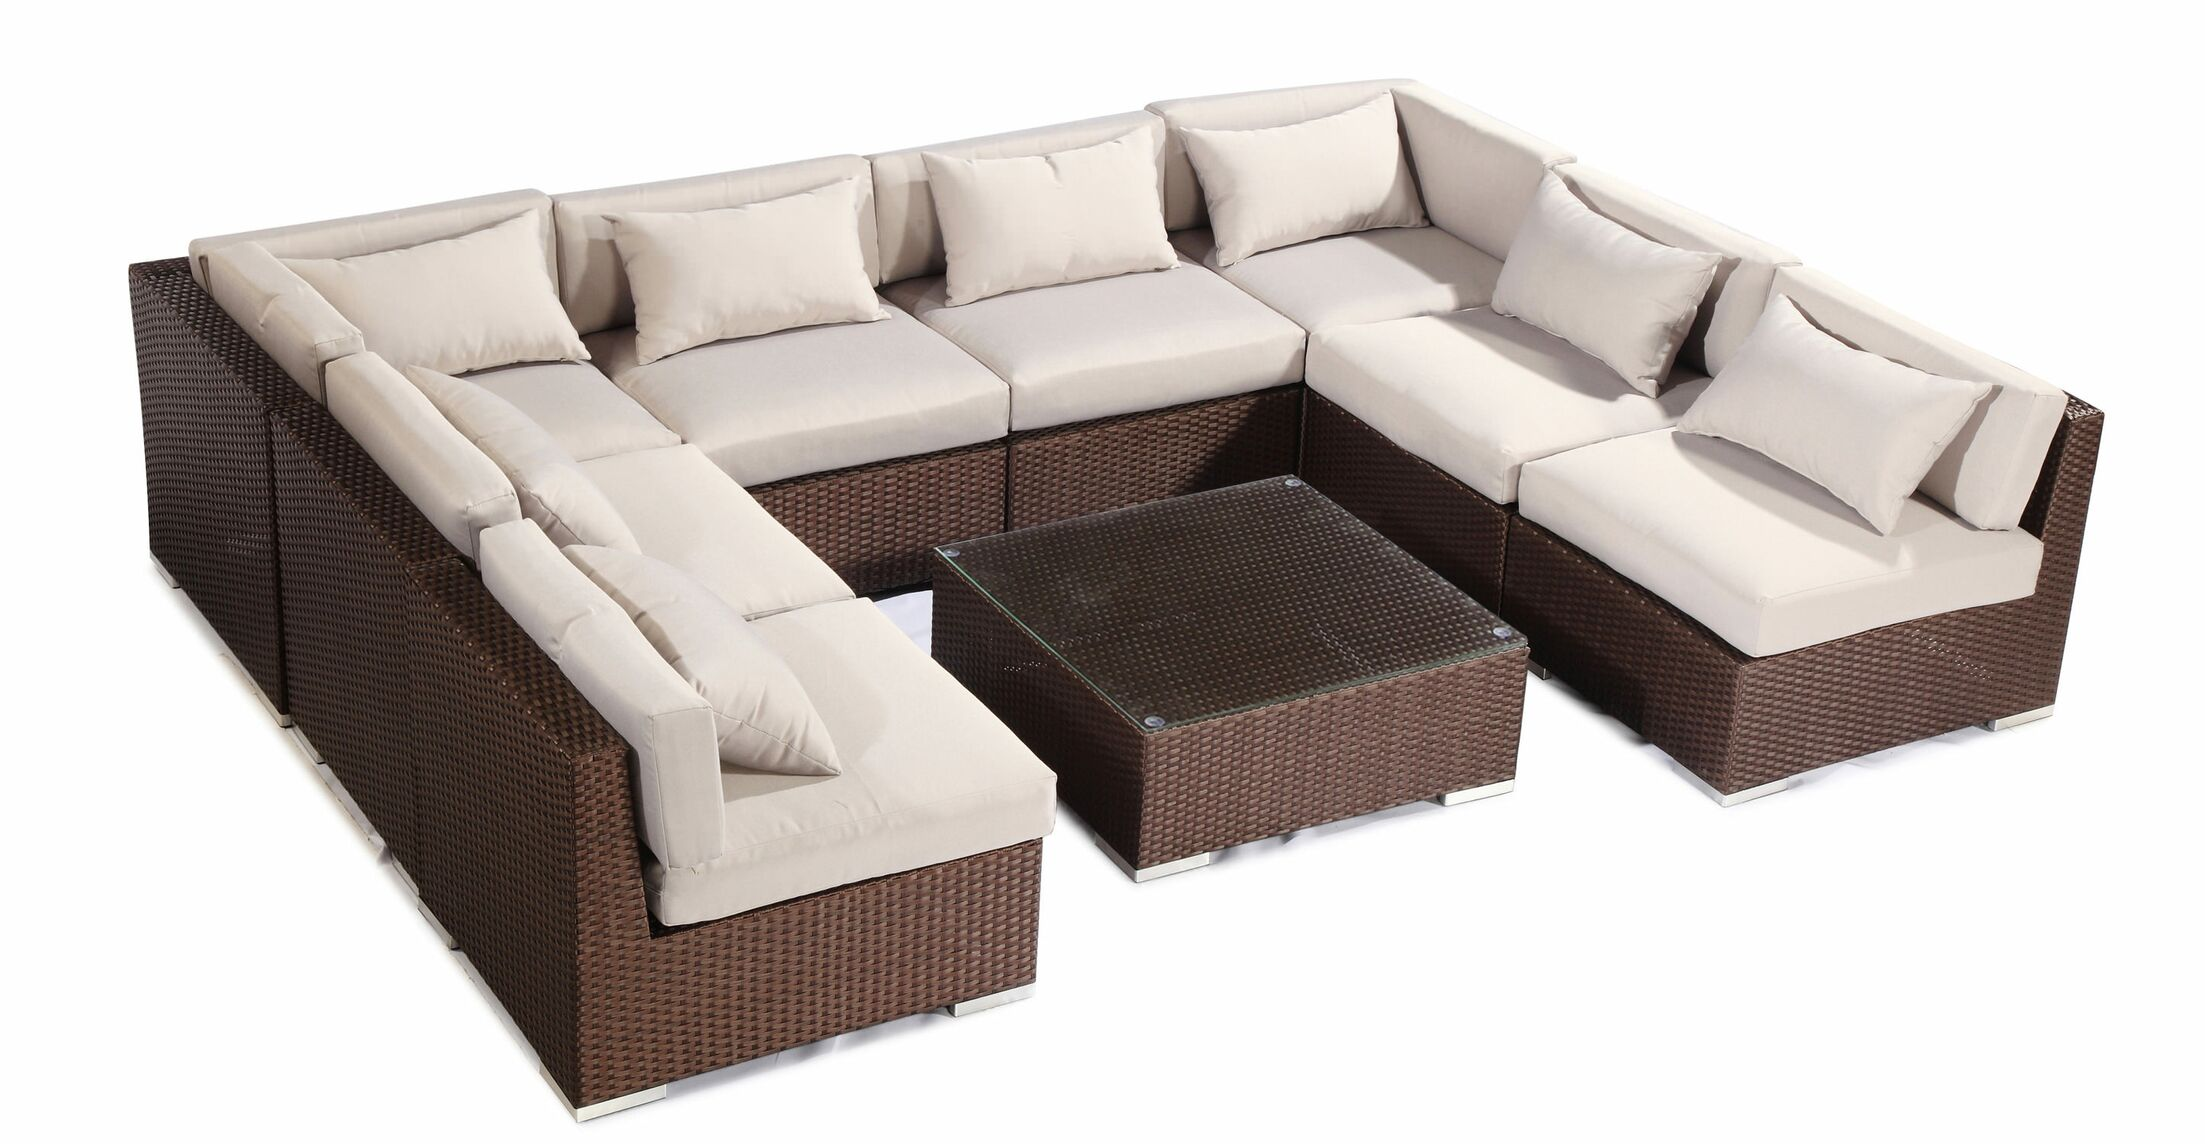 Oahu 9 Piece Sectional Set with Cushions Fabric: Grey, Color: Brown